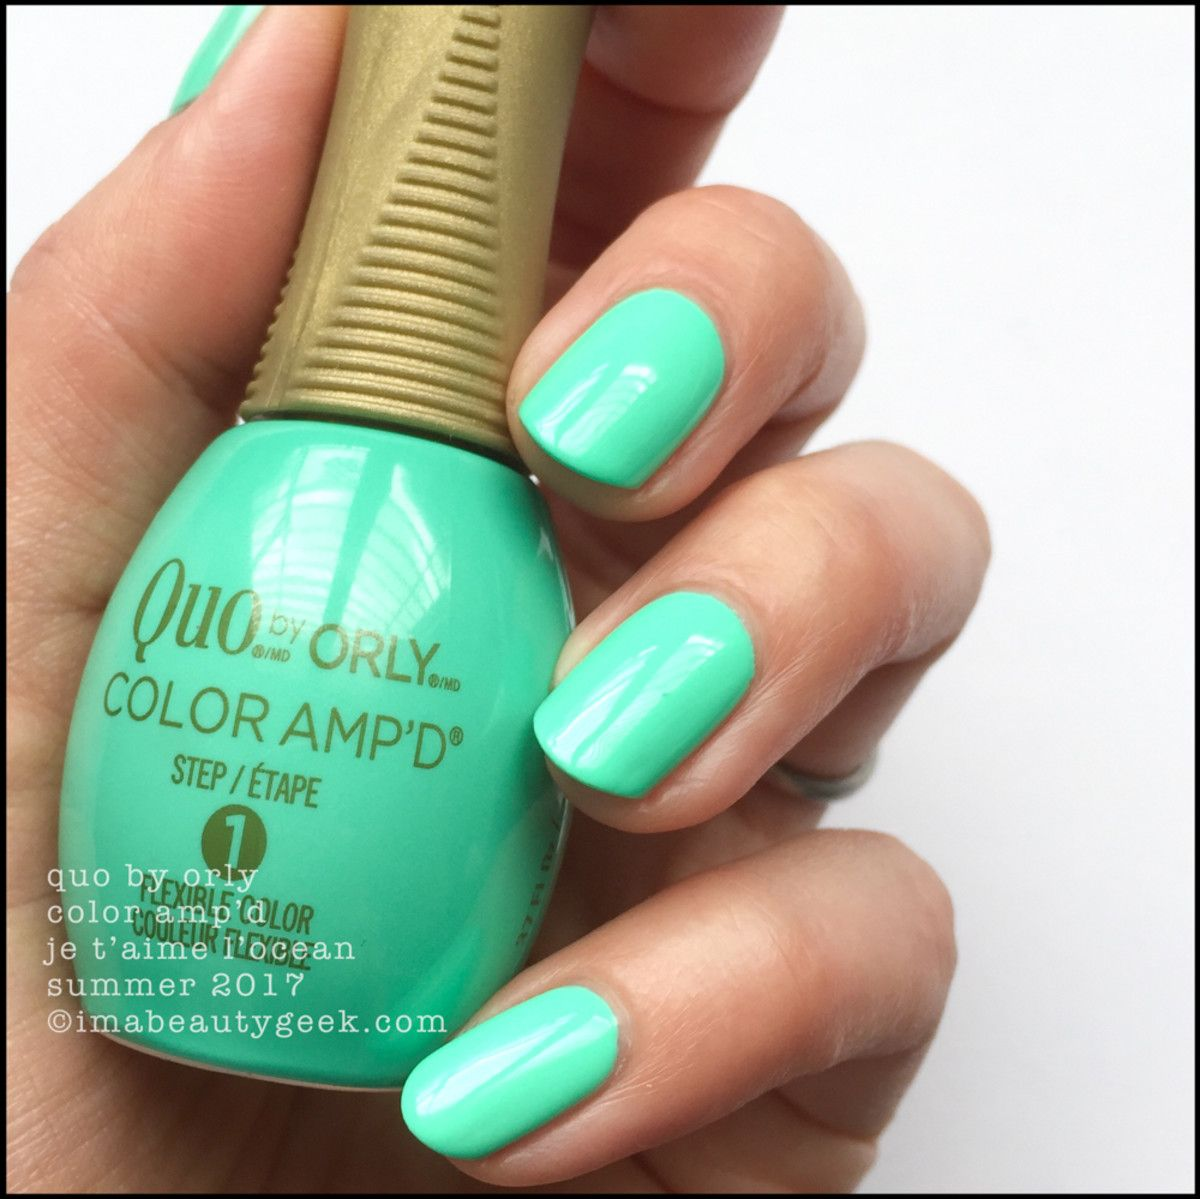 Quo By Orly Color Amp D Summer 2017 Swatches Review Nail Art Nails Nail Designs